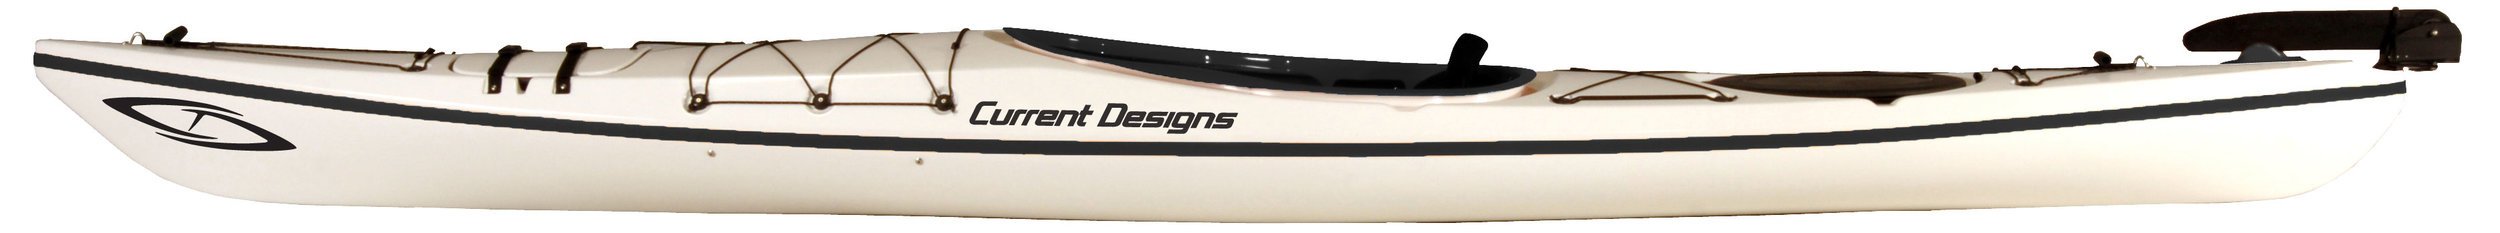 """Vision 140:  With just a little more room to spare, this 14' kayak is perfect for day tripping and week night paddles. Add the optional rudder for improved tracking and steering capabilities and you have a great kayak for both lakes and rivers. Length: 14' 0"""" Width: 24.00"""""""